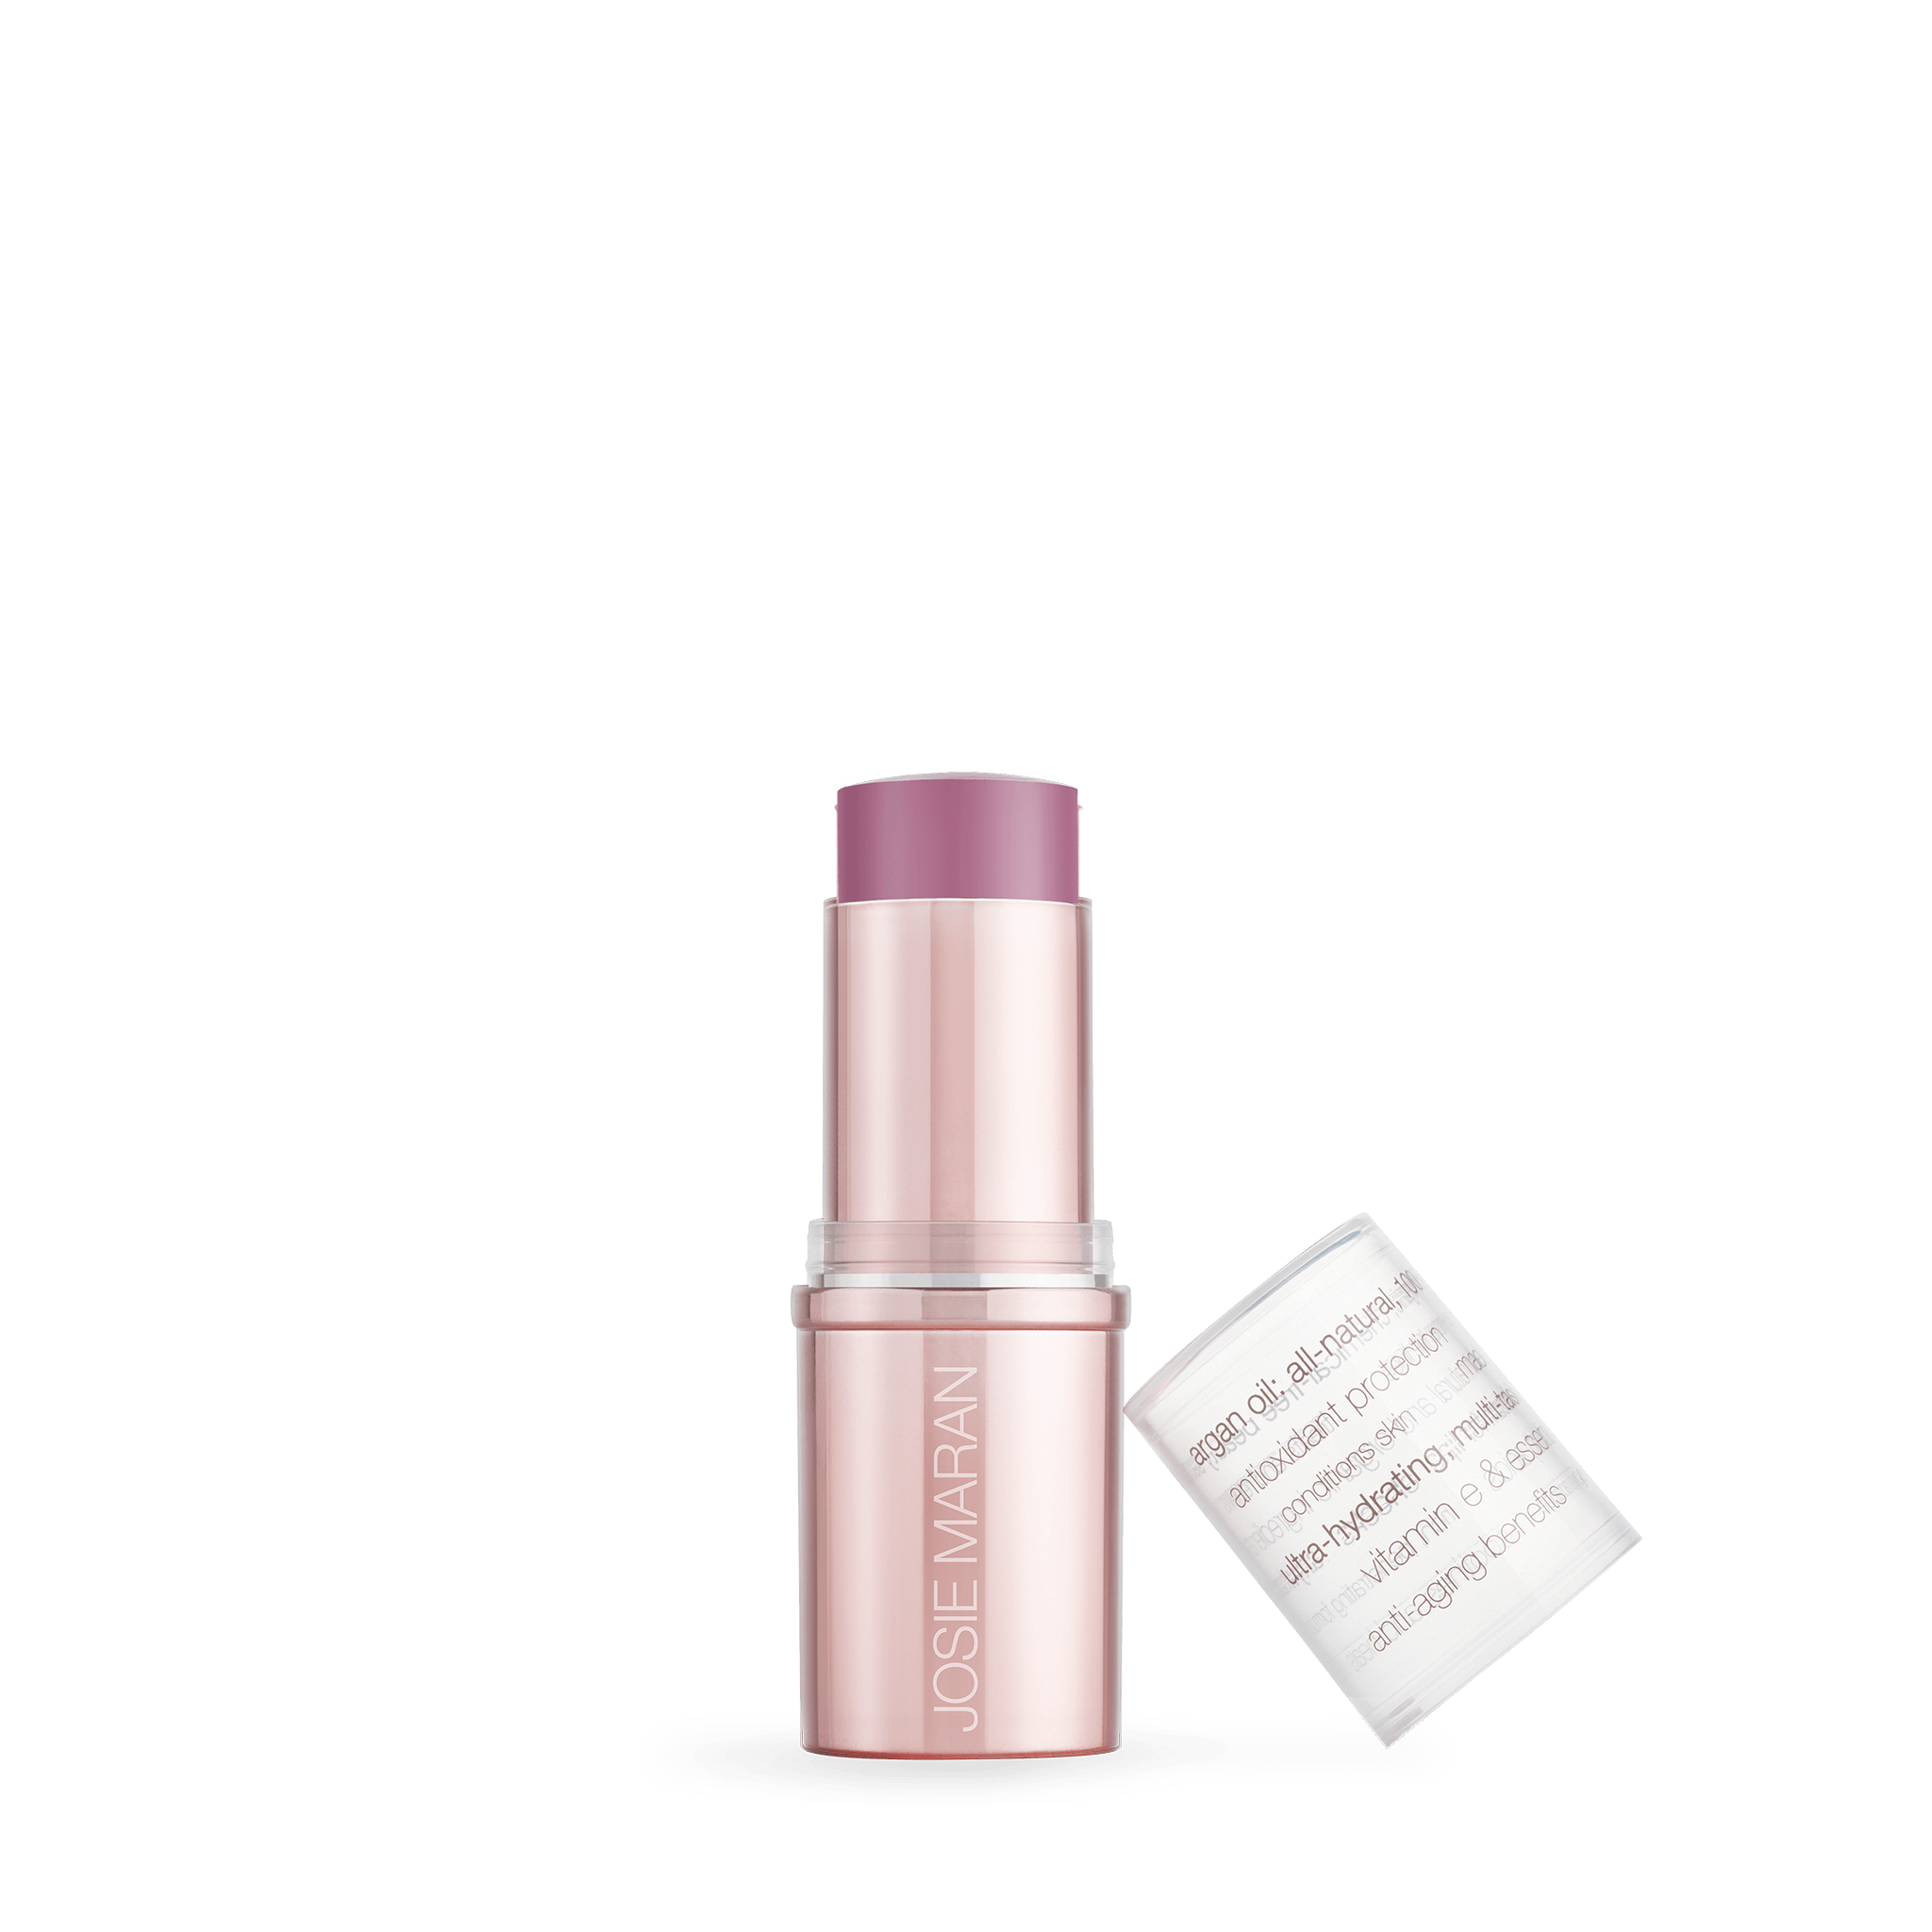 21 with questions josie maran recommendations dress for everyday in 2019